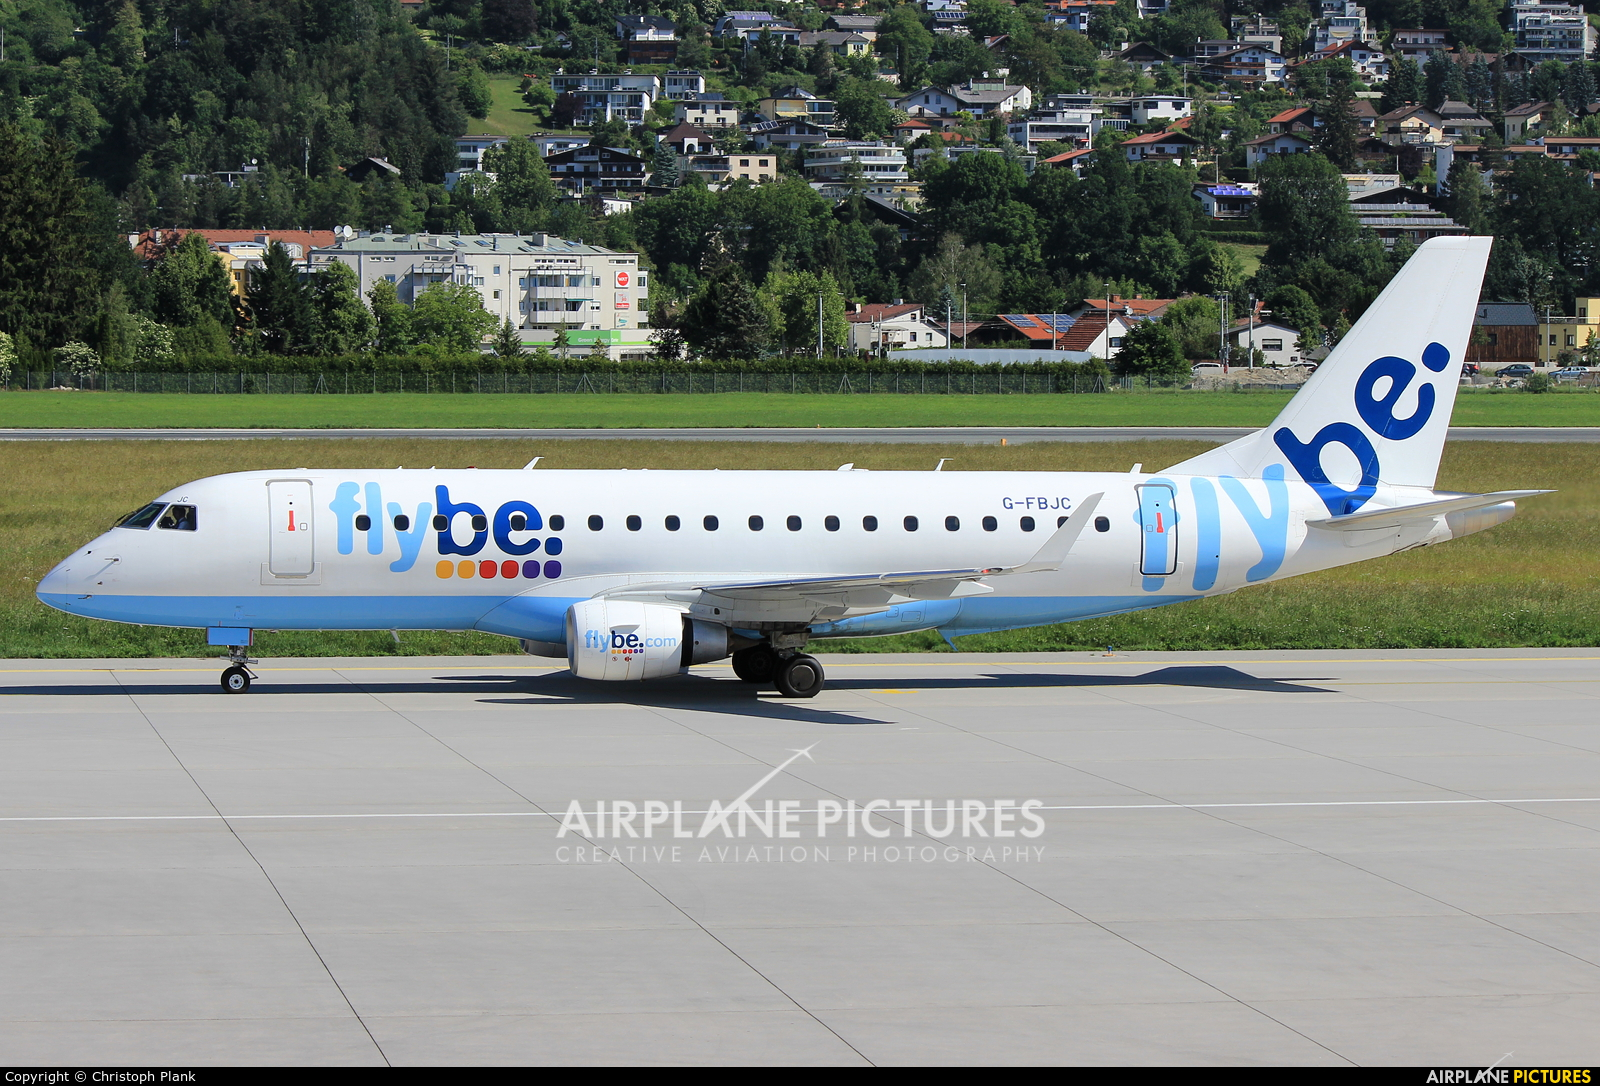 Flybe G-FBJC aircraft at Innsbruck